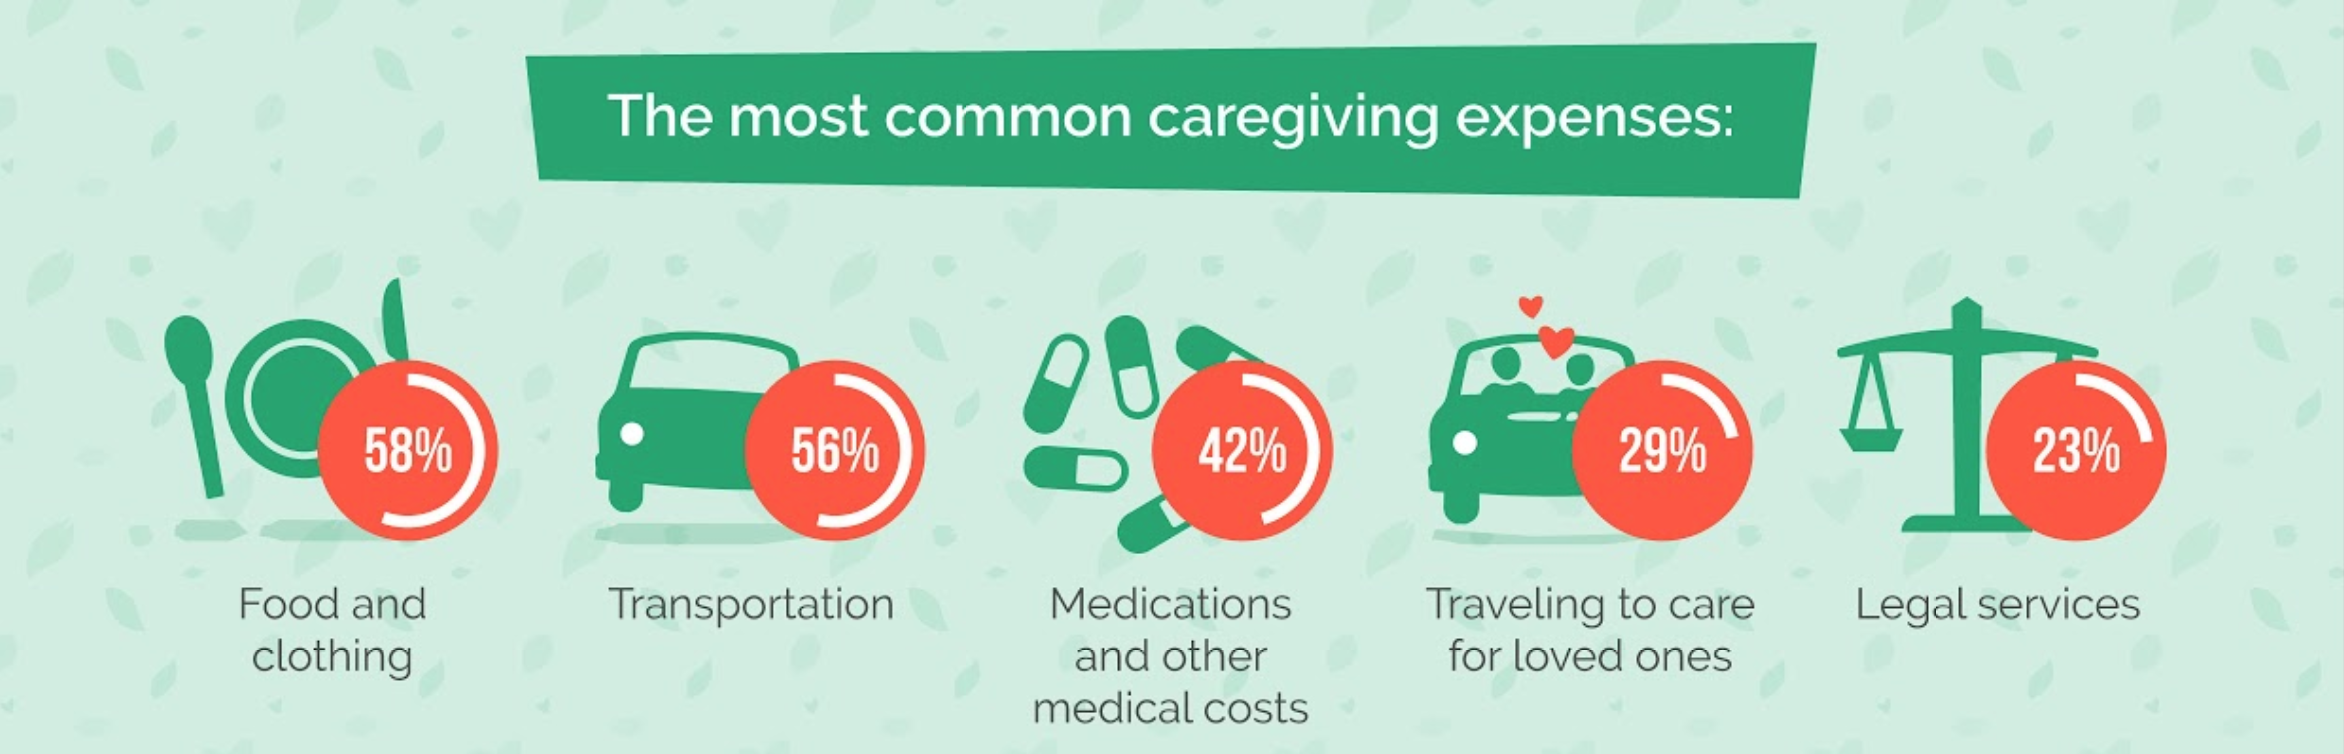 Most common caregiving expense